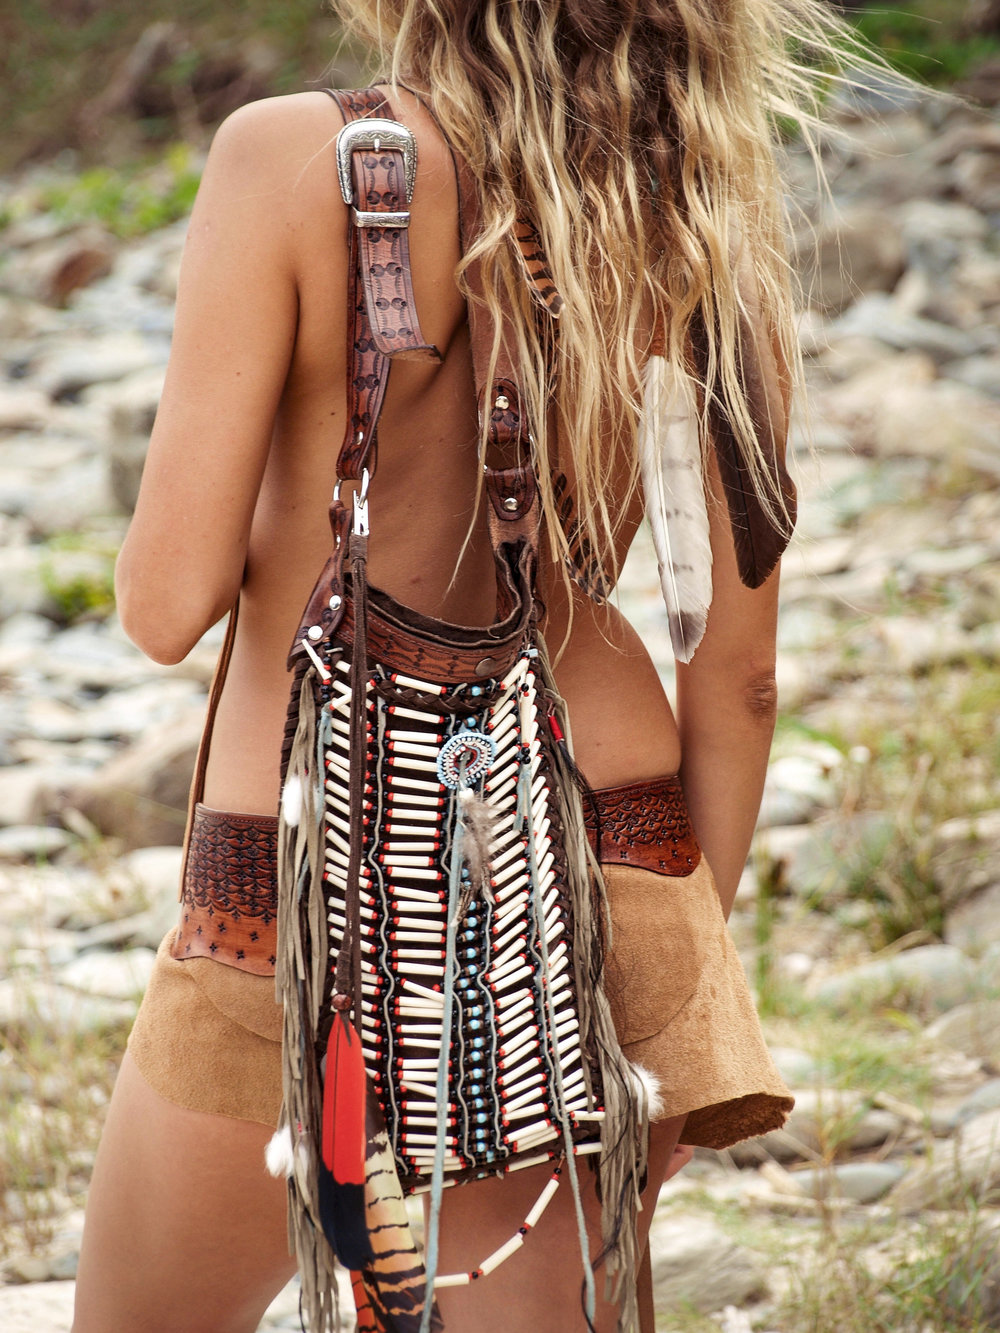 Buffalo Girl Icon: Our beaded Warrior Bag designed and handcrafted by Terry Cronin.   Model:  Romina Gardella